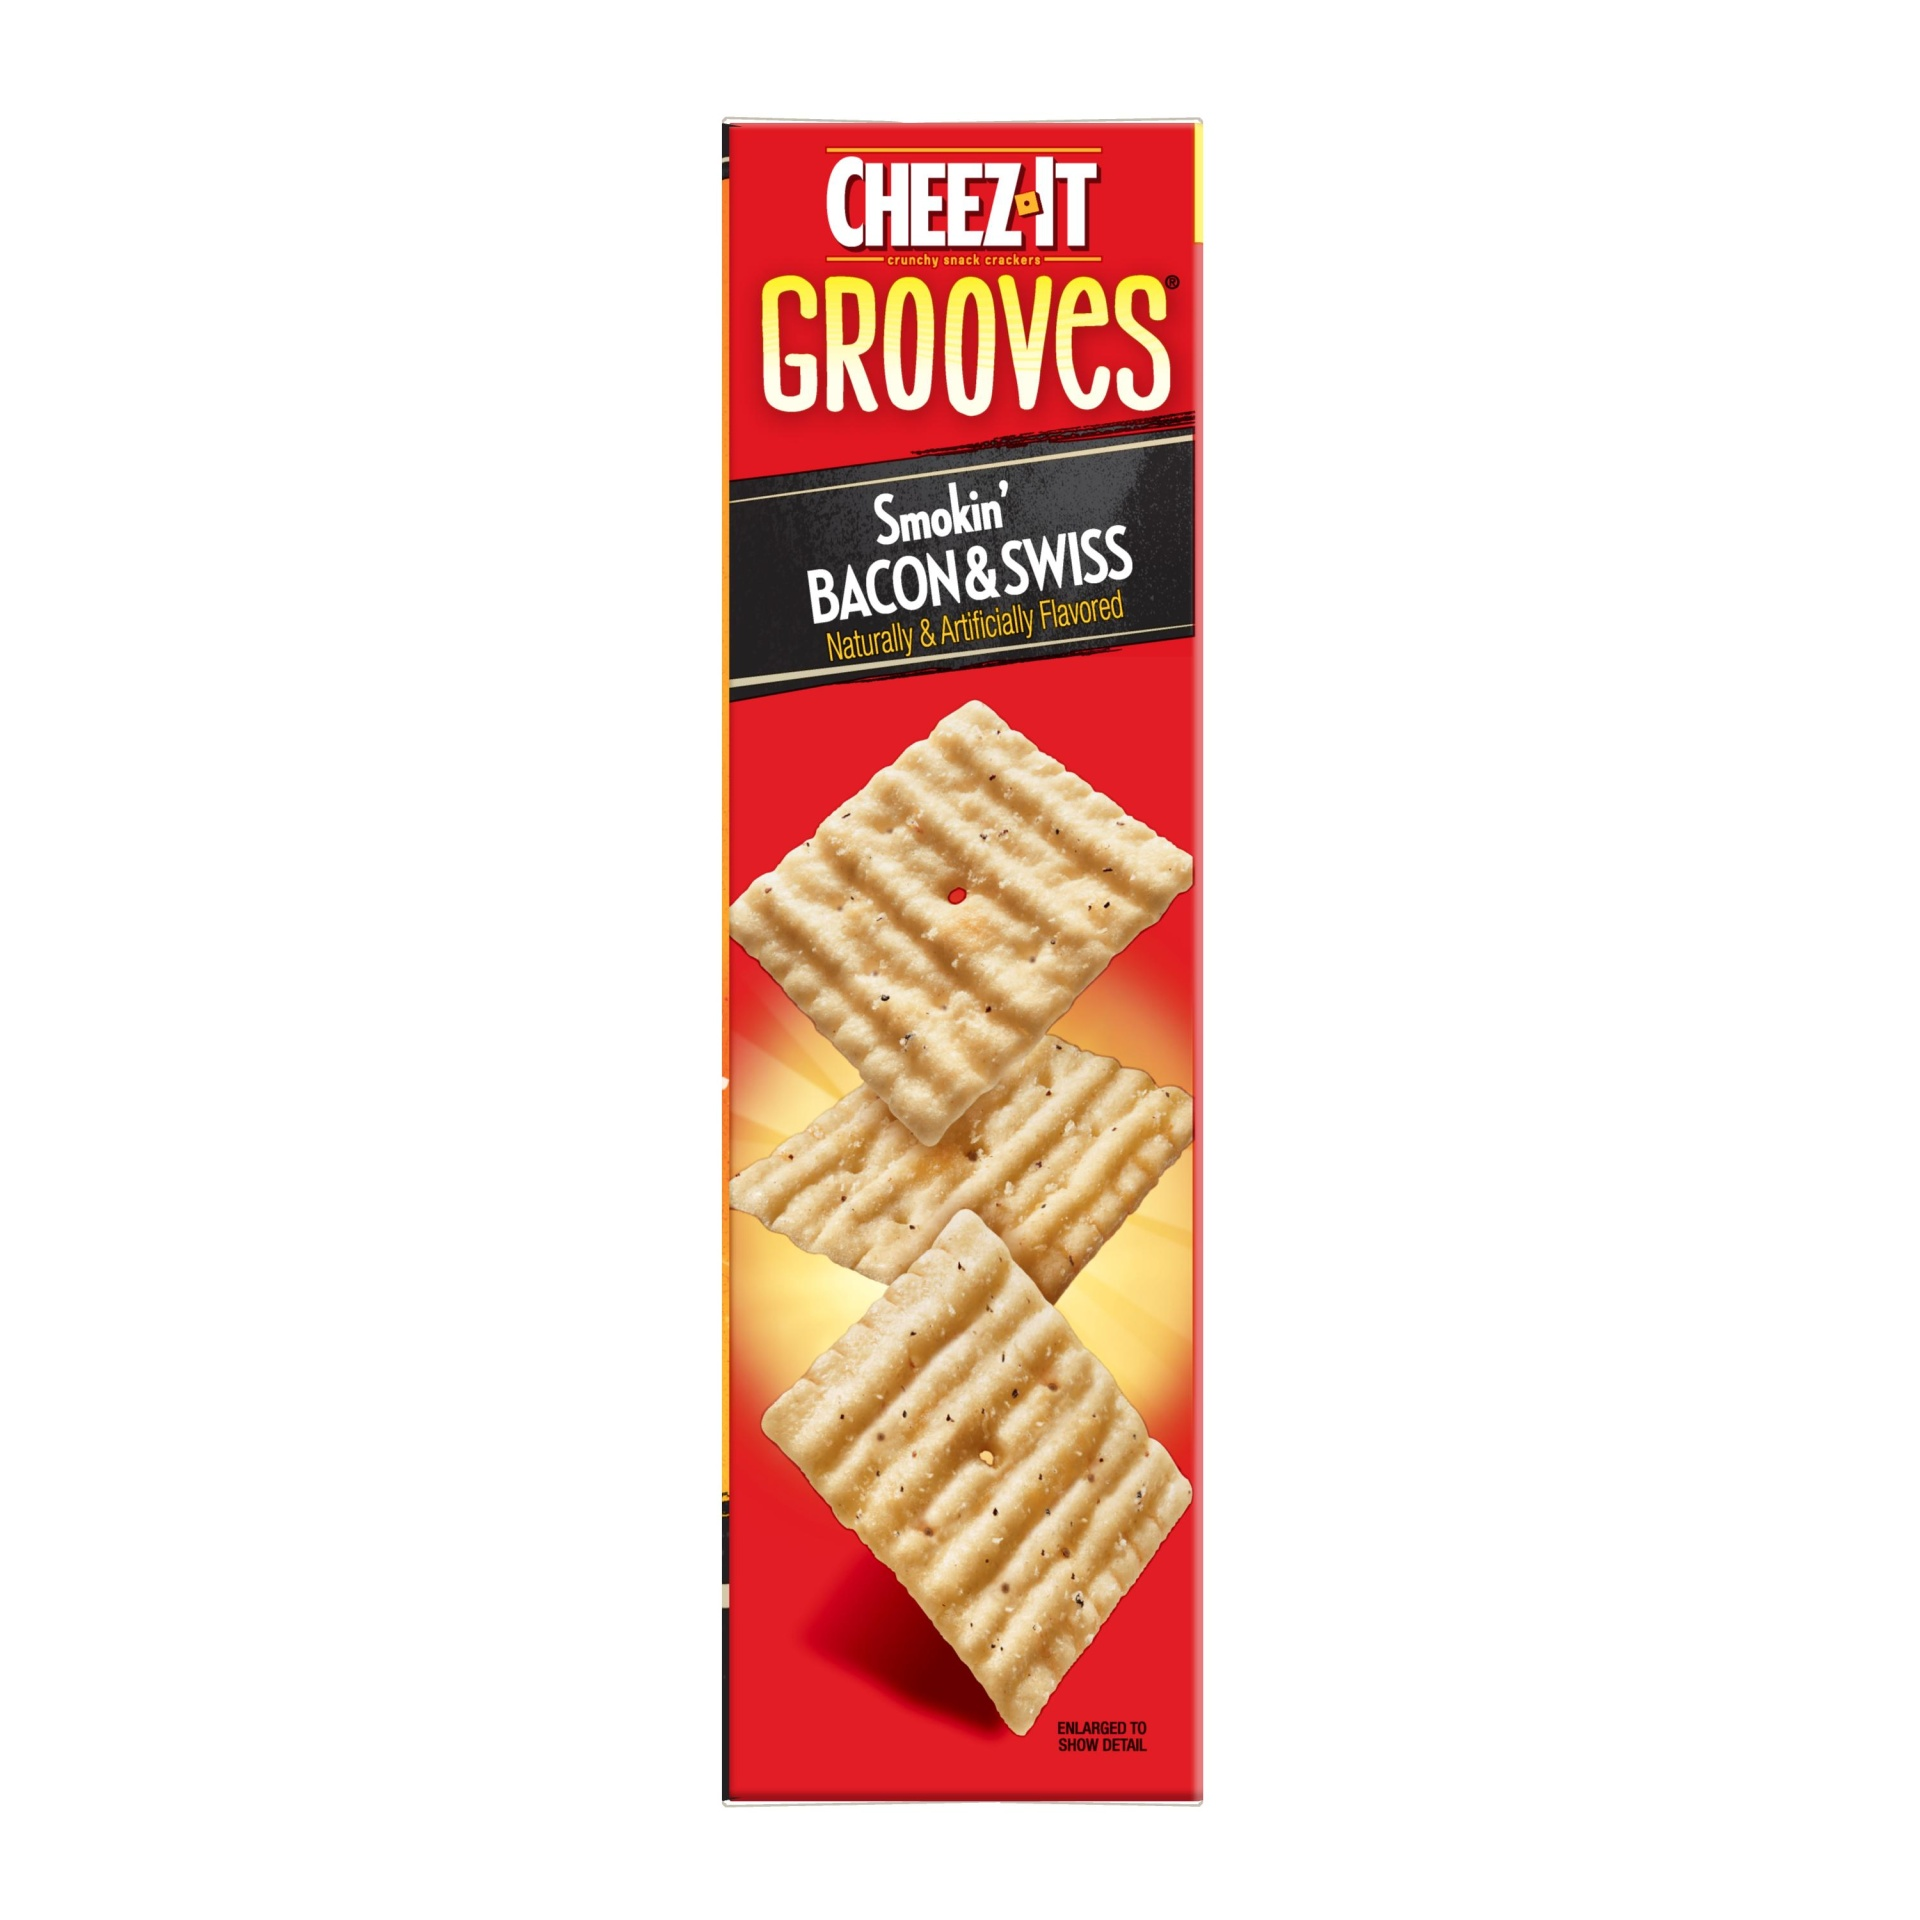 slide 4 of 4, Cheez-It Crunchy Cheese Snack Crackers Smokin' Bacon and Swiss Special Edition,